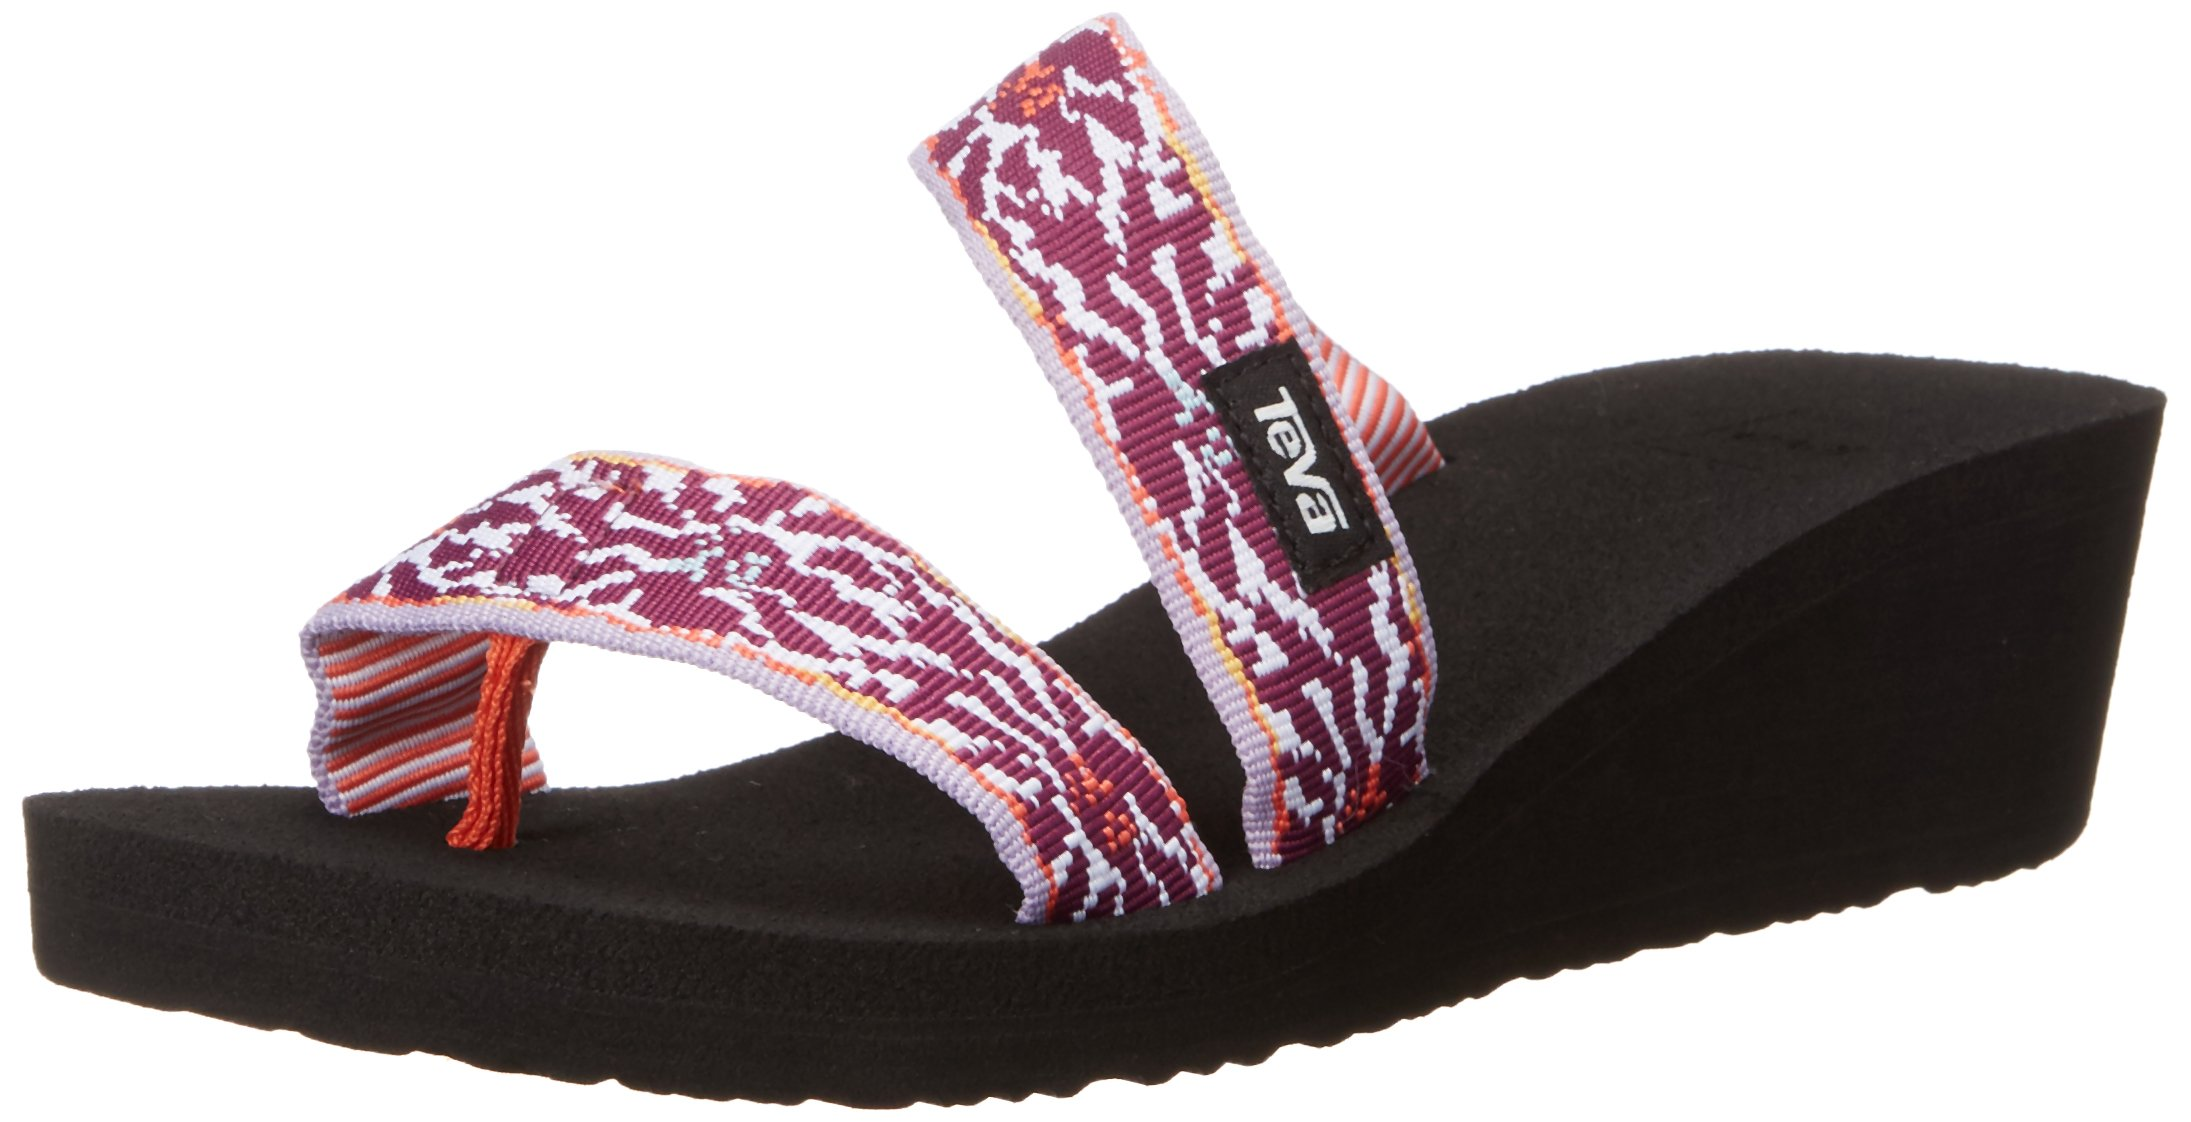 Teva Women's W Mush Mandalyn Wedge Loma Sandal, Lucia Multi/Purple, 6 M US